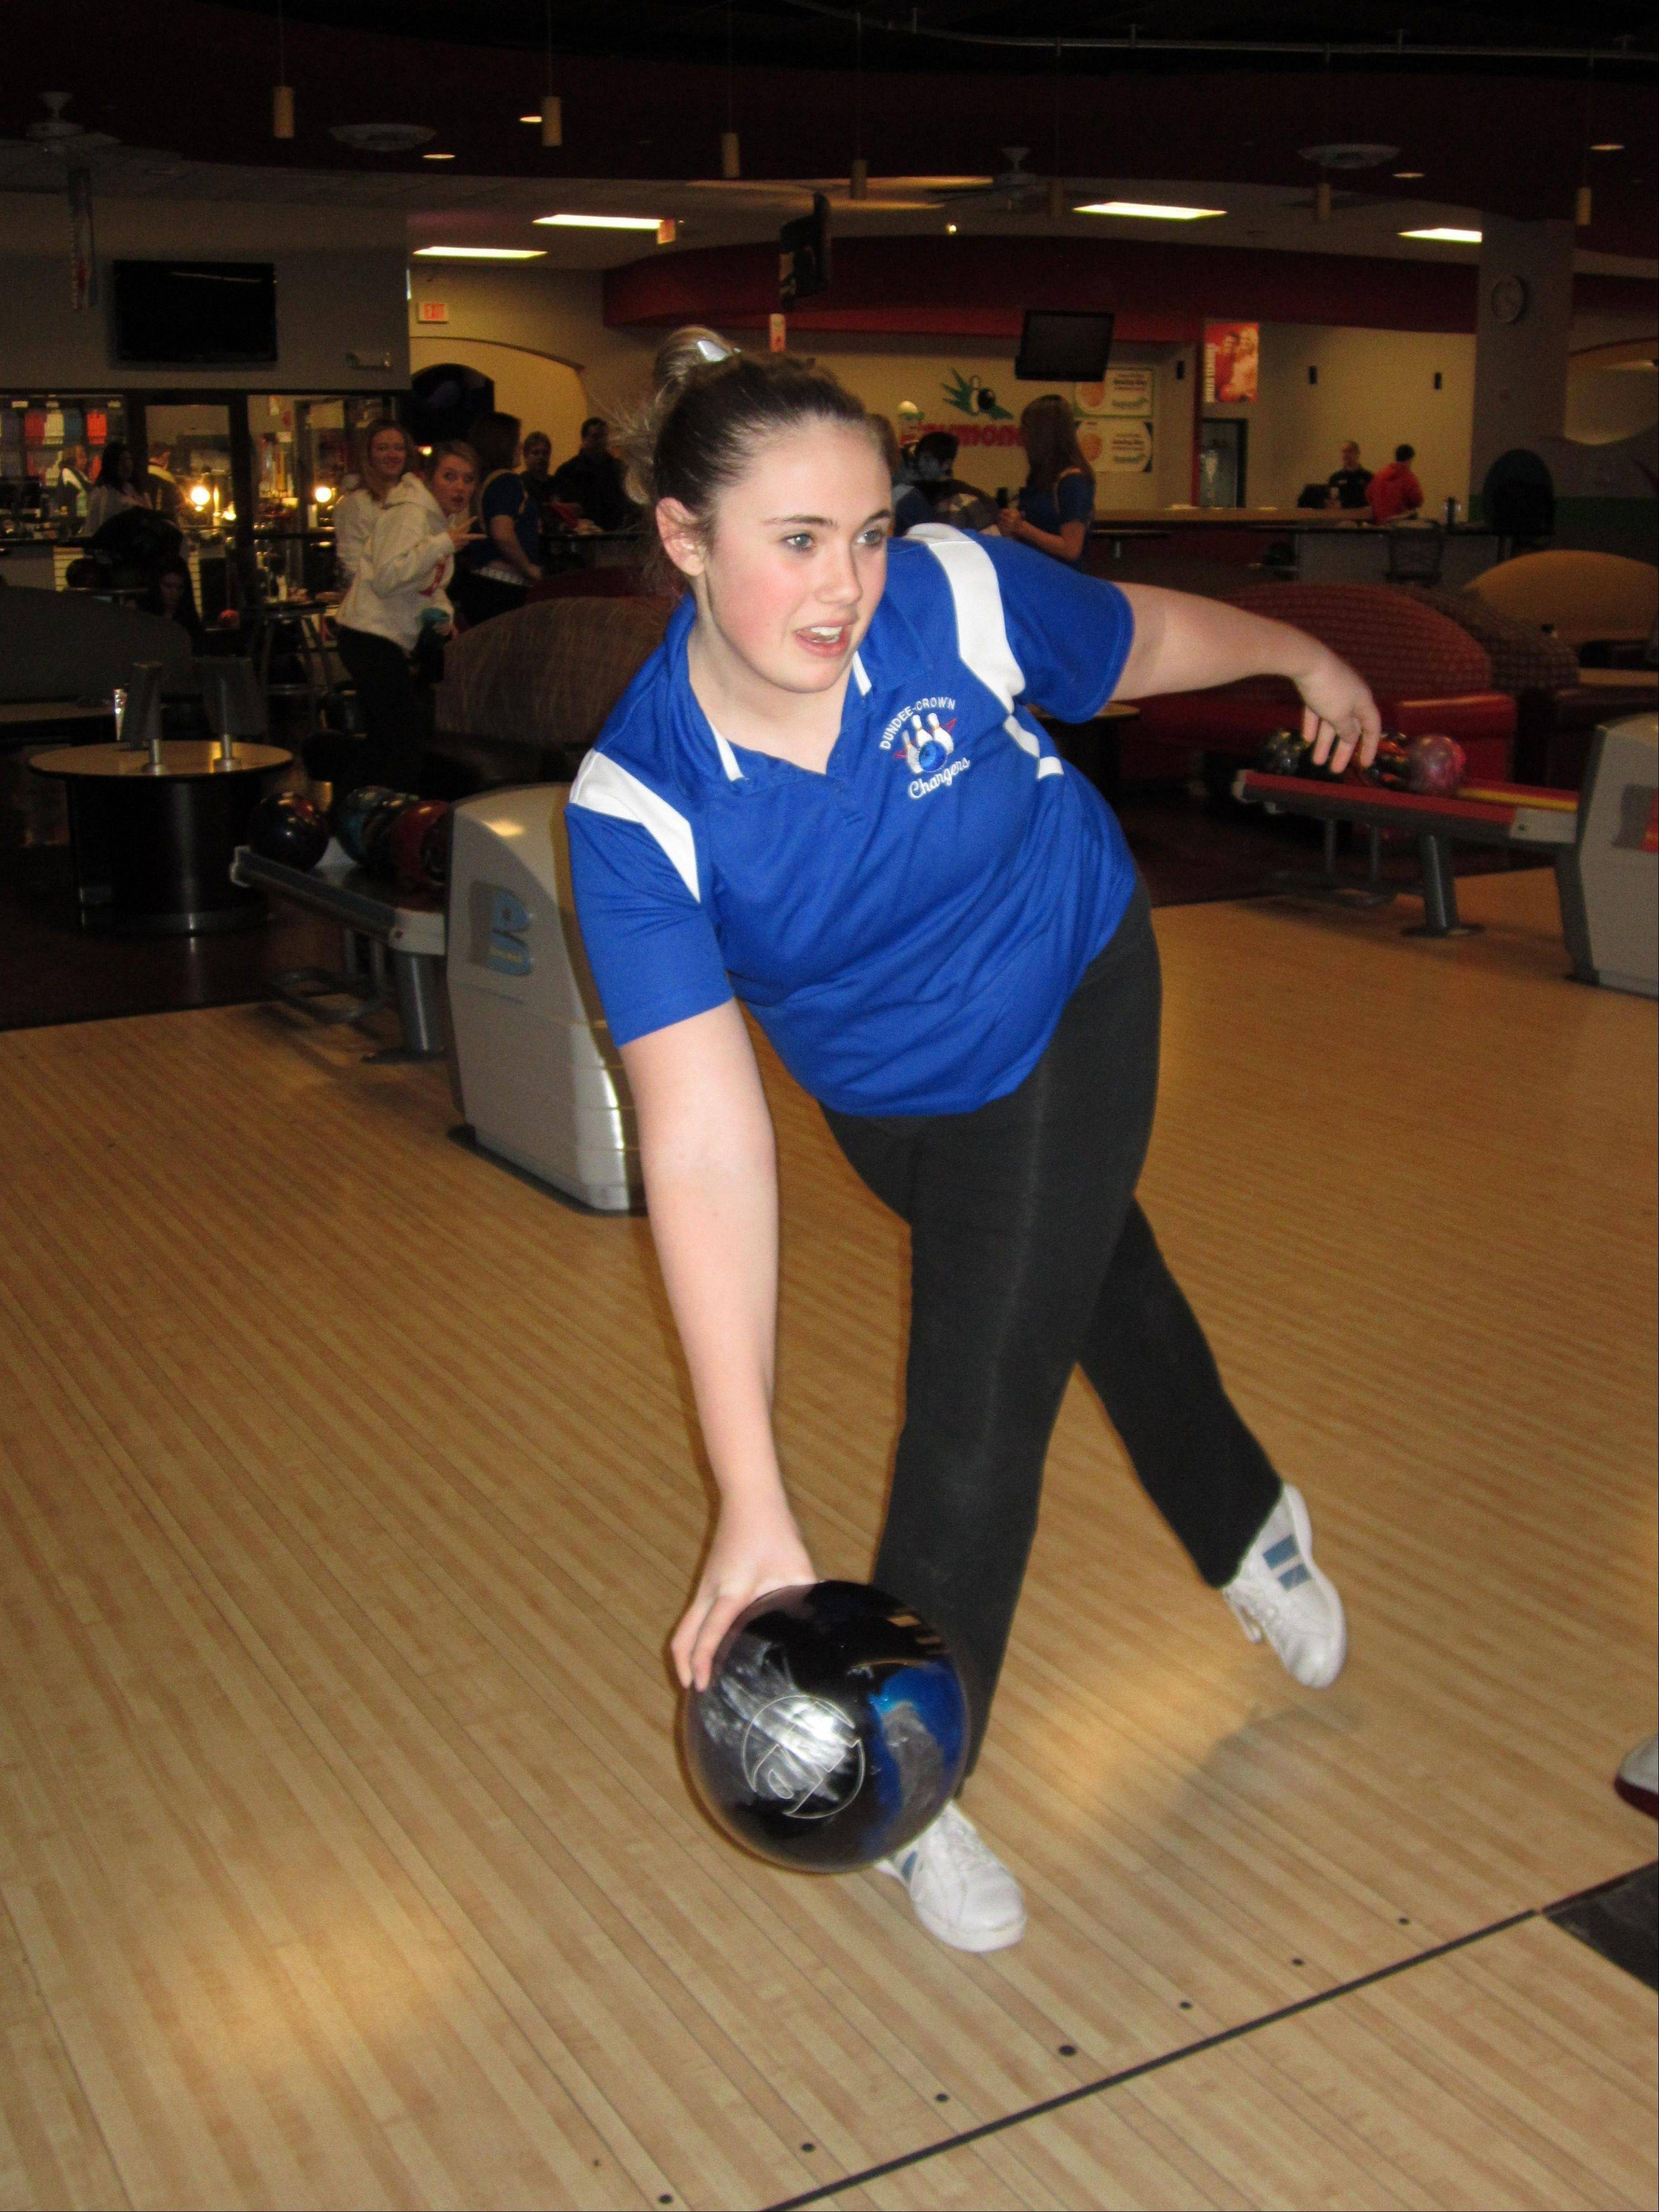 Dundee-Crown junior Karissa Gonio has had a stellar season on the lanes for the Chargers. She and D-C will bowl in the Fox Valley Conference tournament at Raymond's Bowl in Johnsburg.